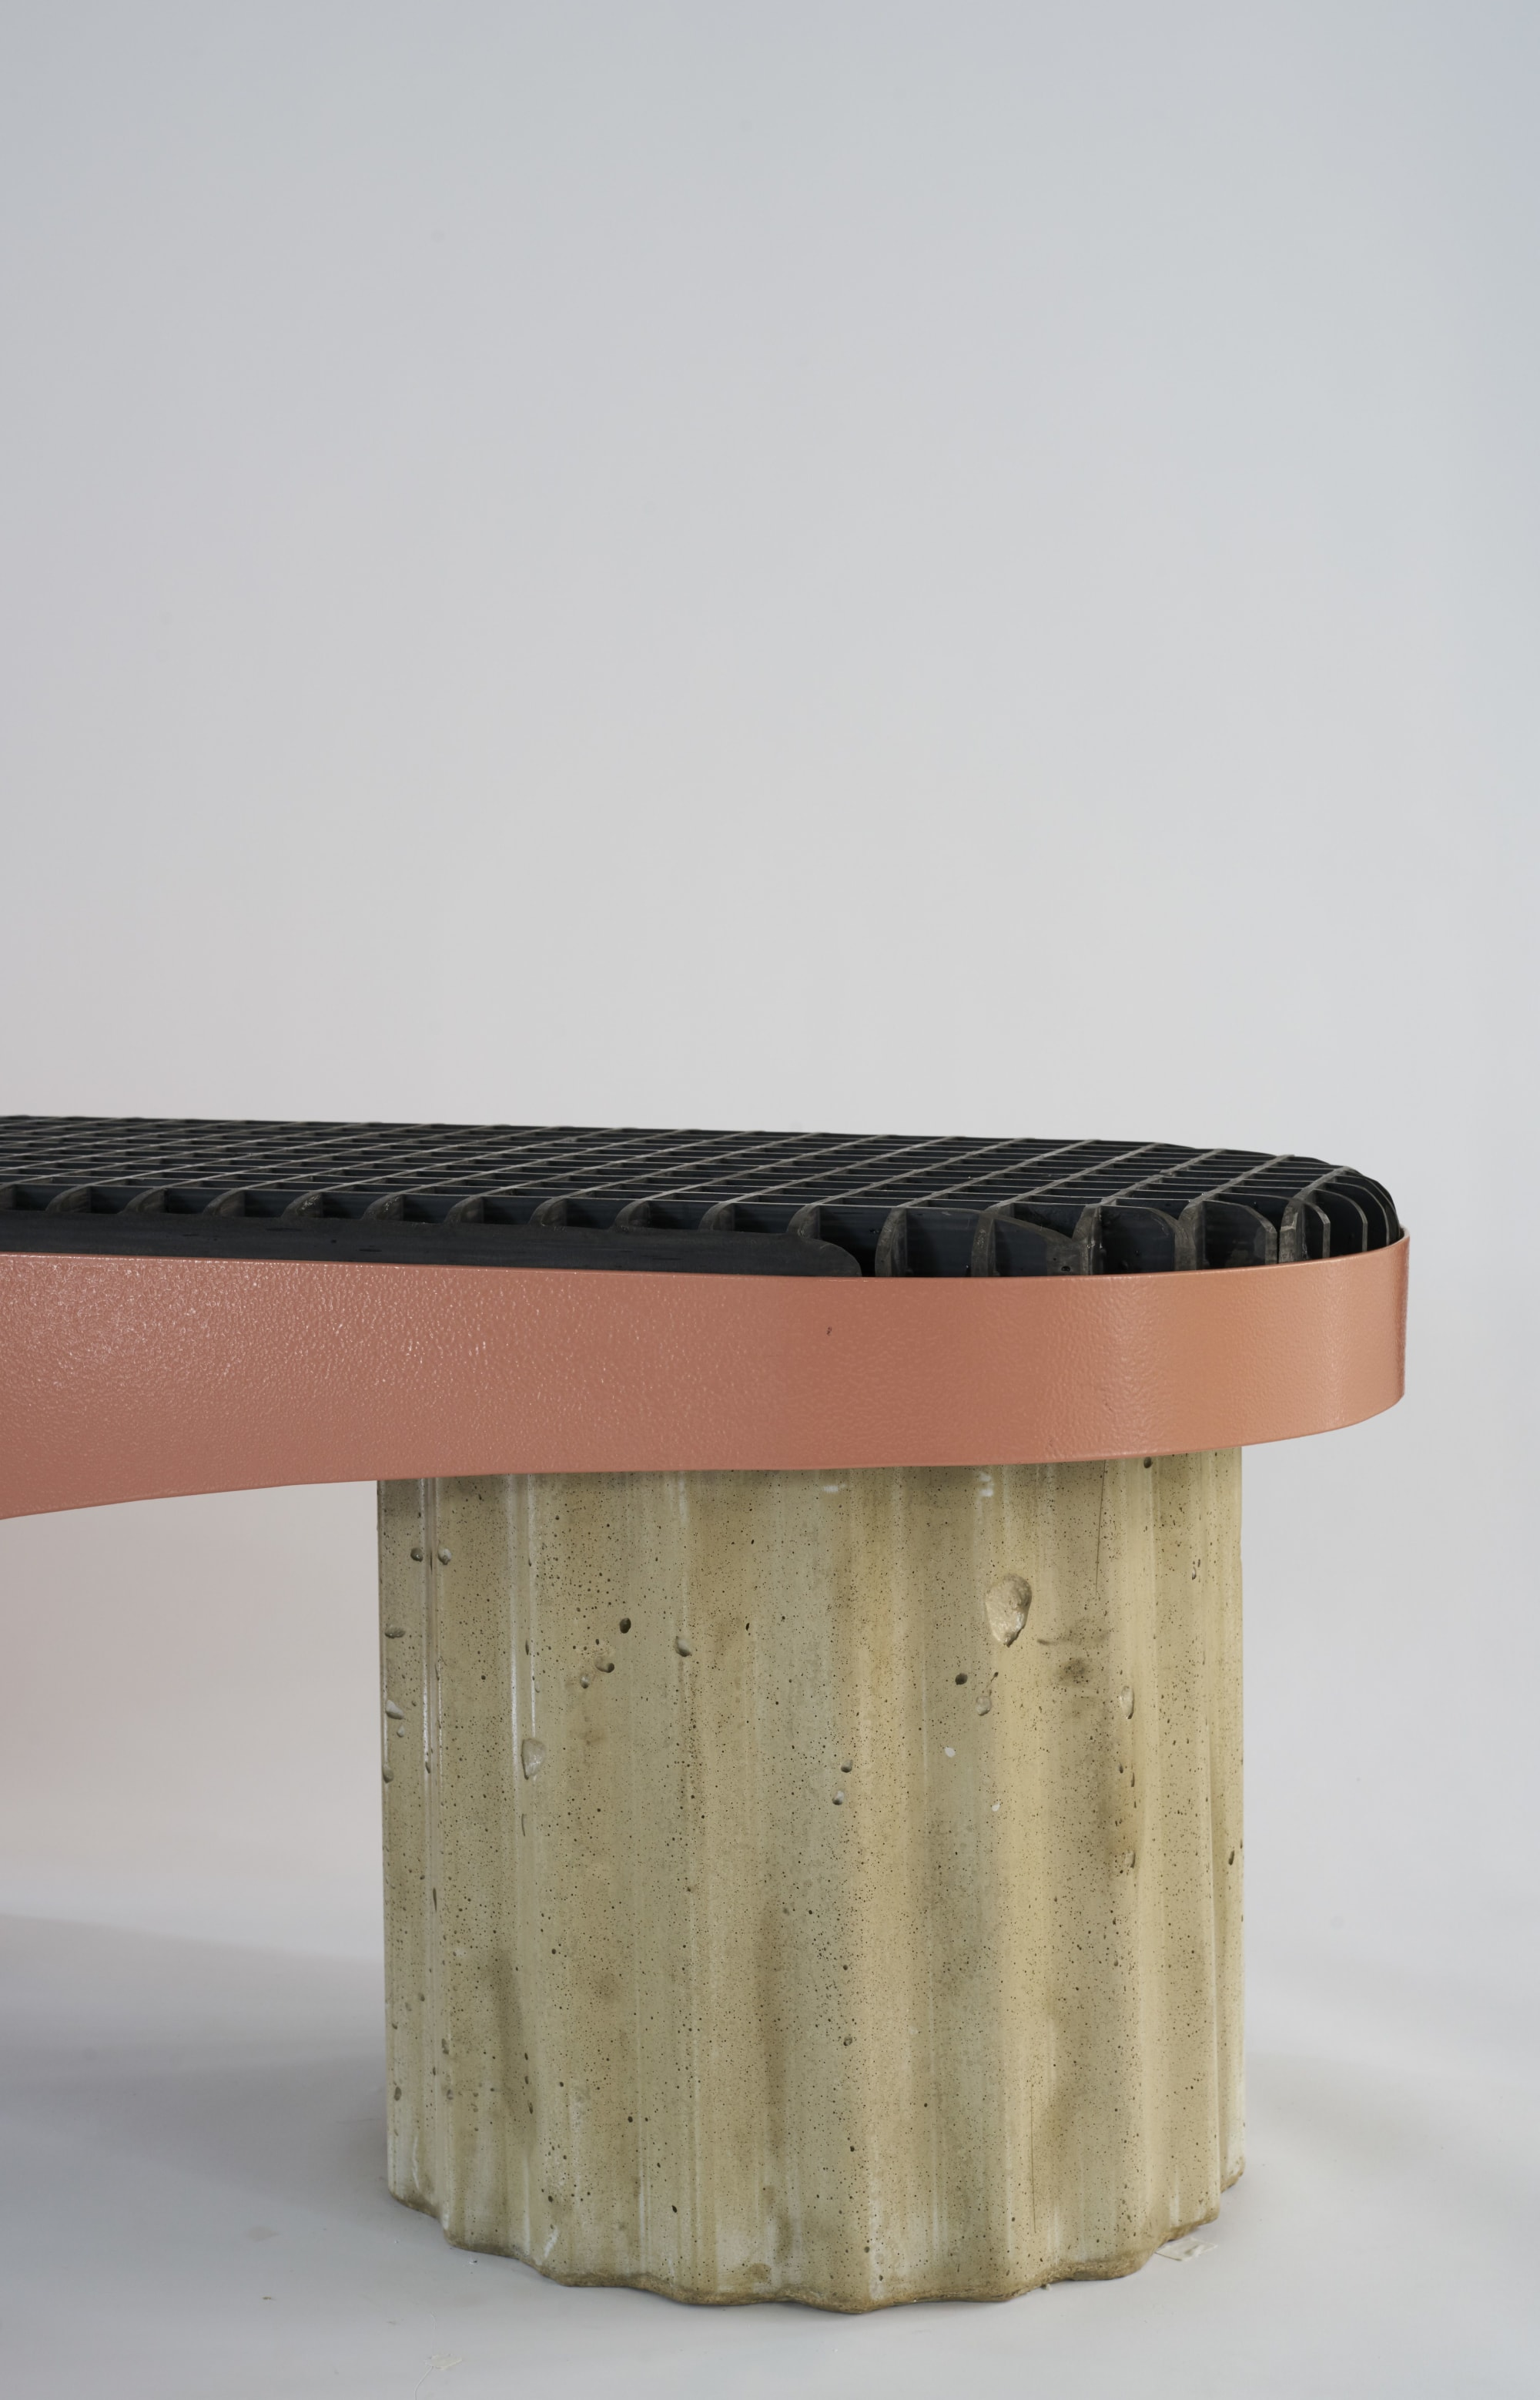 Benches & Ottomans by Arcana seen at Inside/Out - The Vale Park, Brooklyn - Jacesin Bench